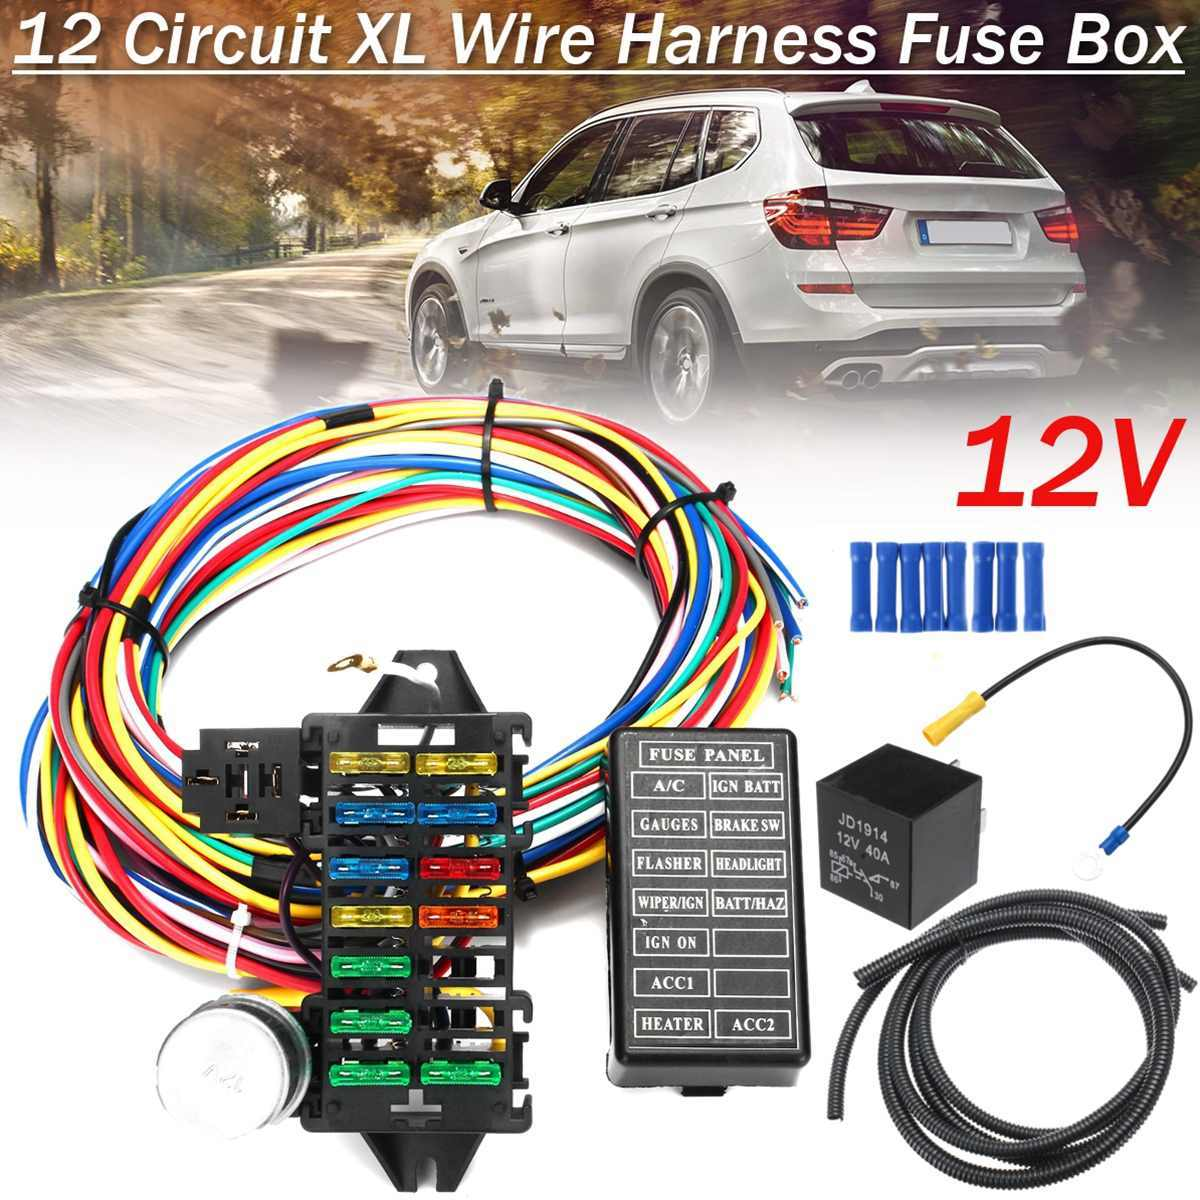 hight resolution of 12 circuit universal wiring harness 14 fuse 12v muscle car hot rod street rod xl wires